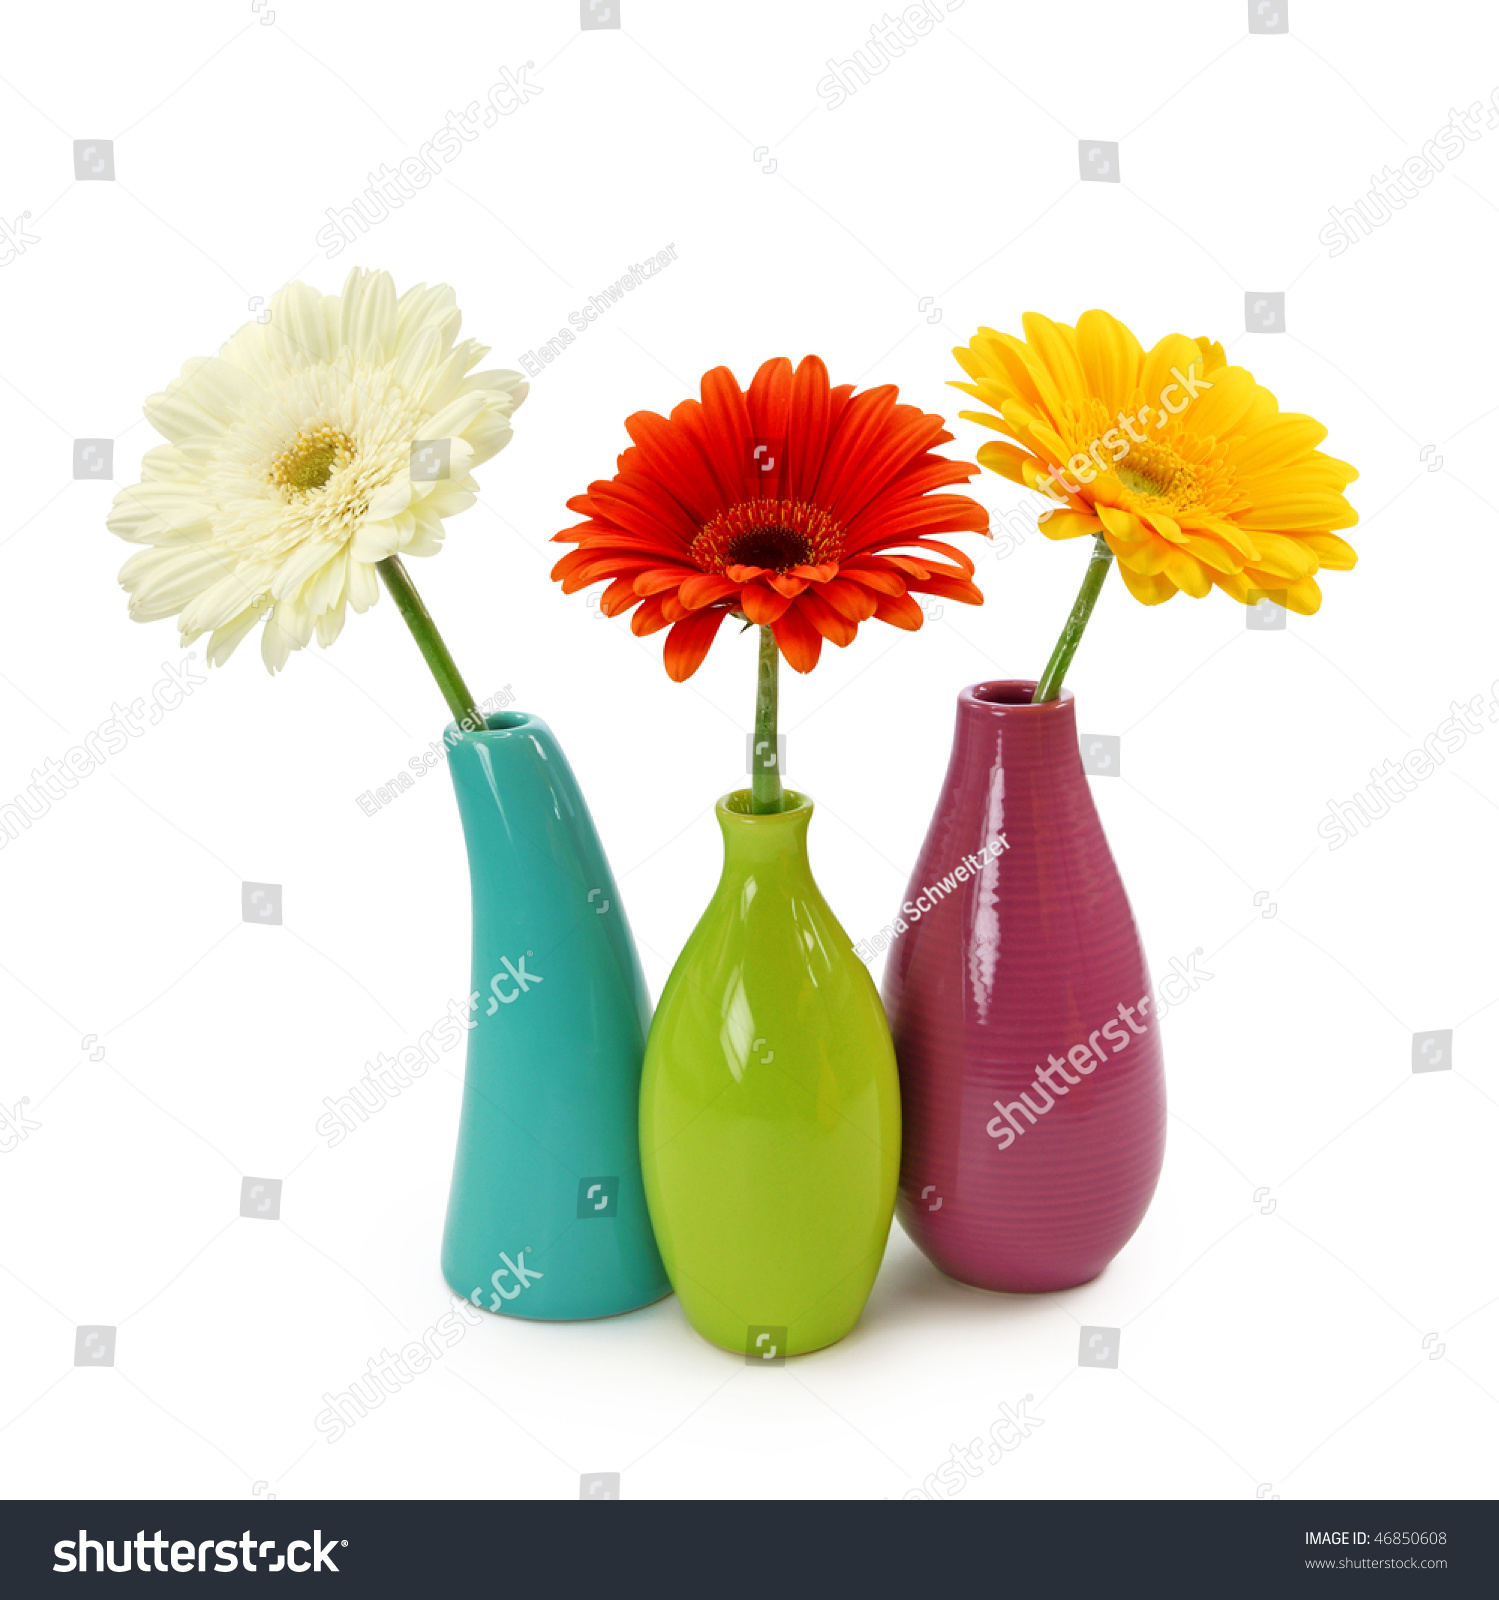 stock image background white photo on vase in royalty vases isolated free flowers